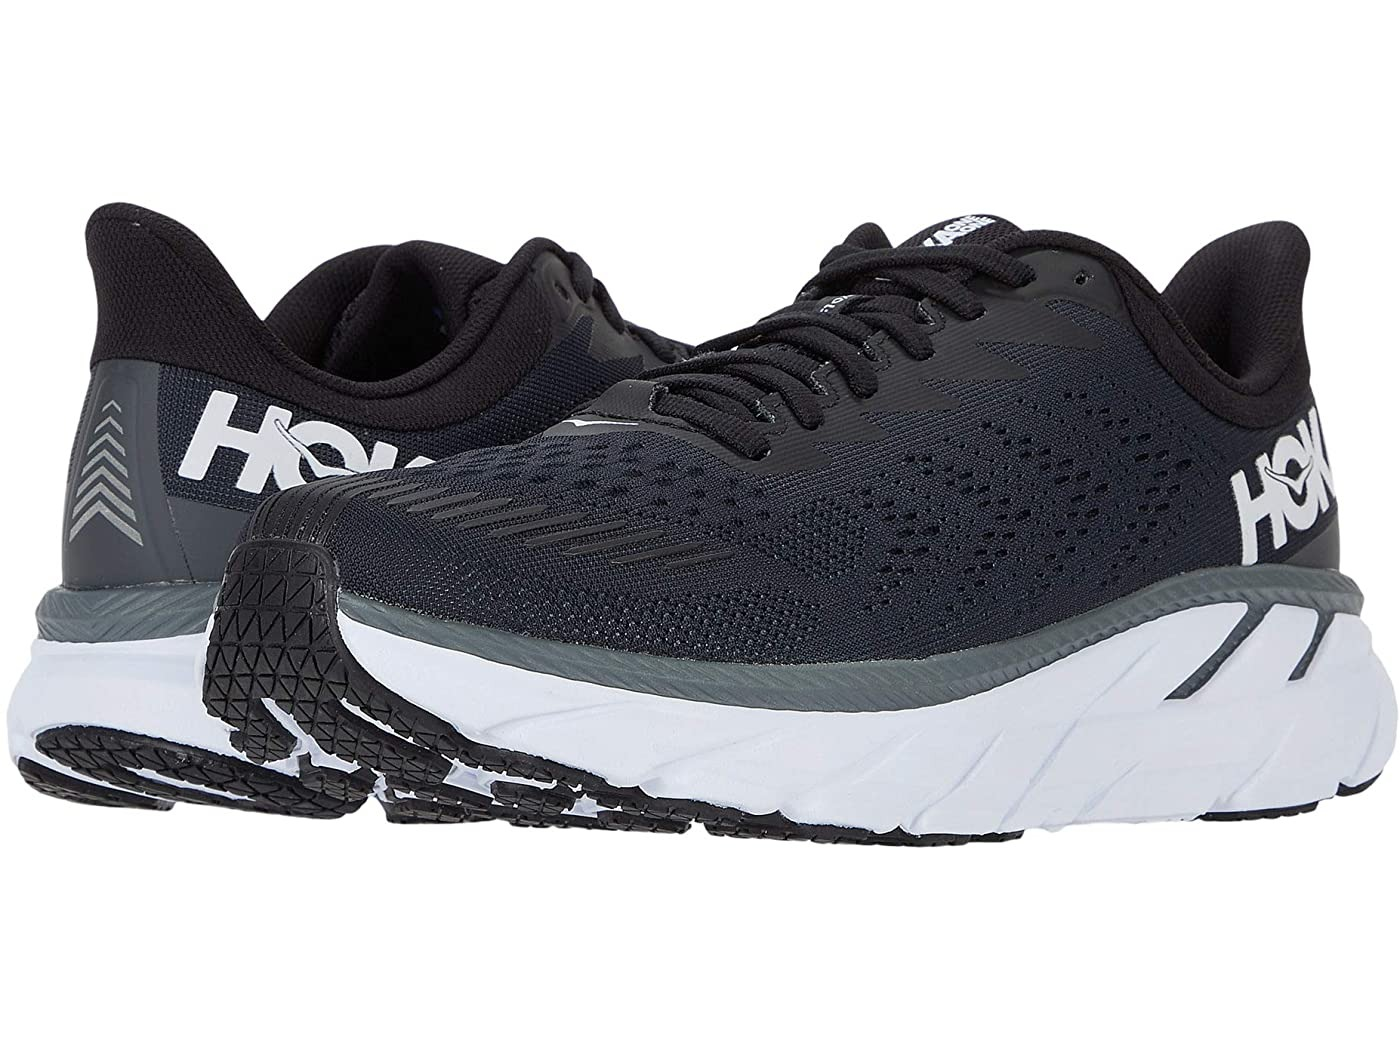 most comfortable sneakers - Hoka One One Clifton 7